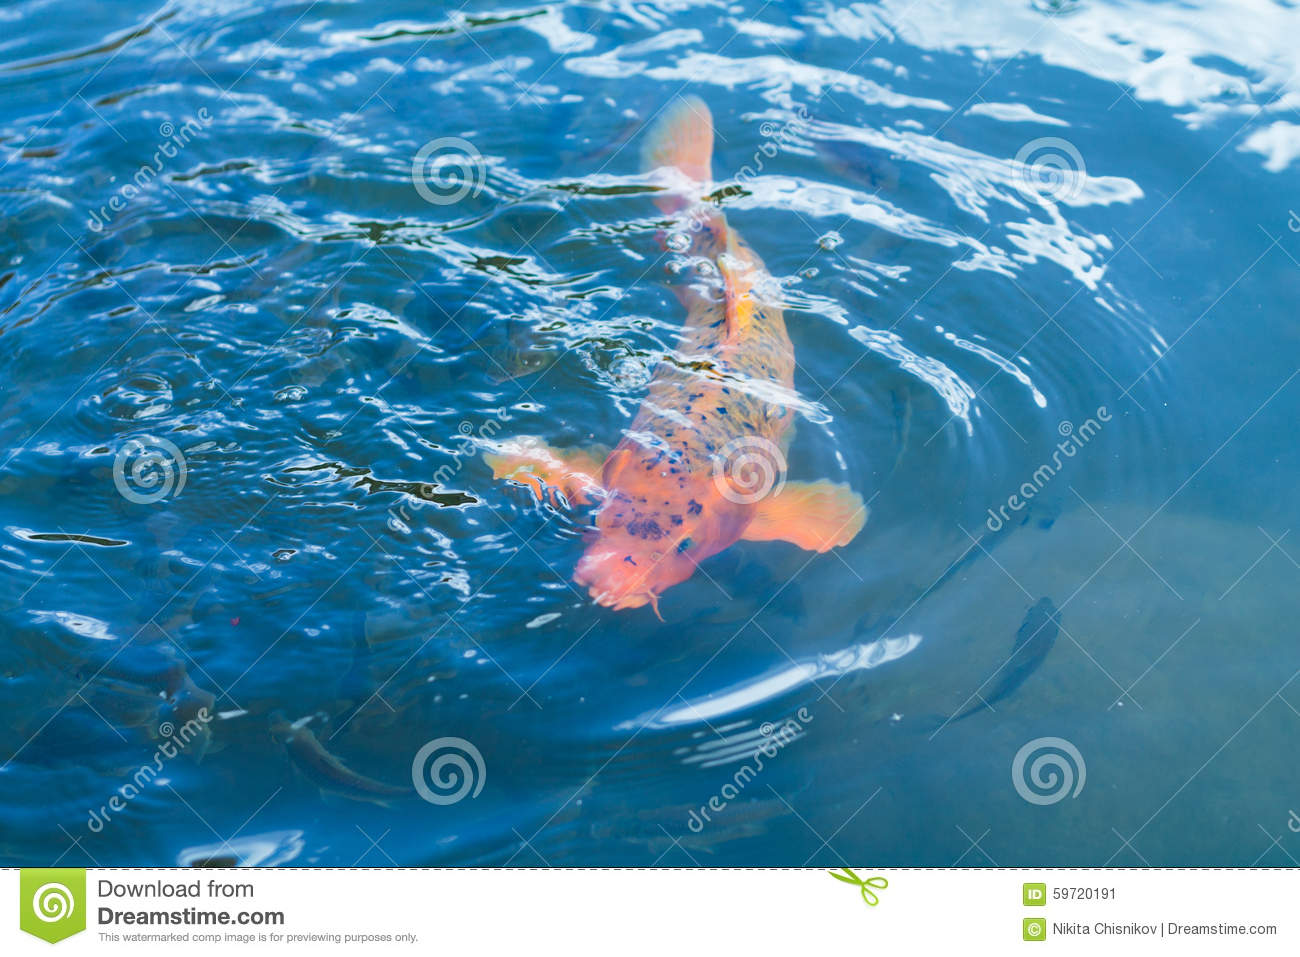 Koi fish stock photo image 59720191 for Koi fish in water